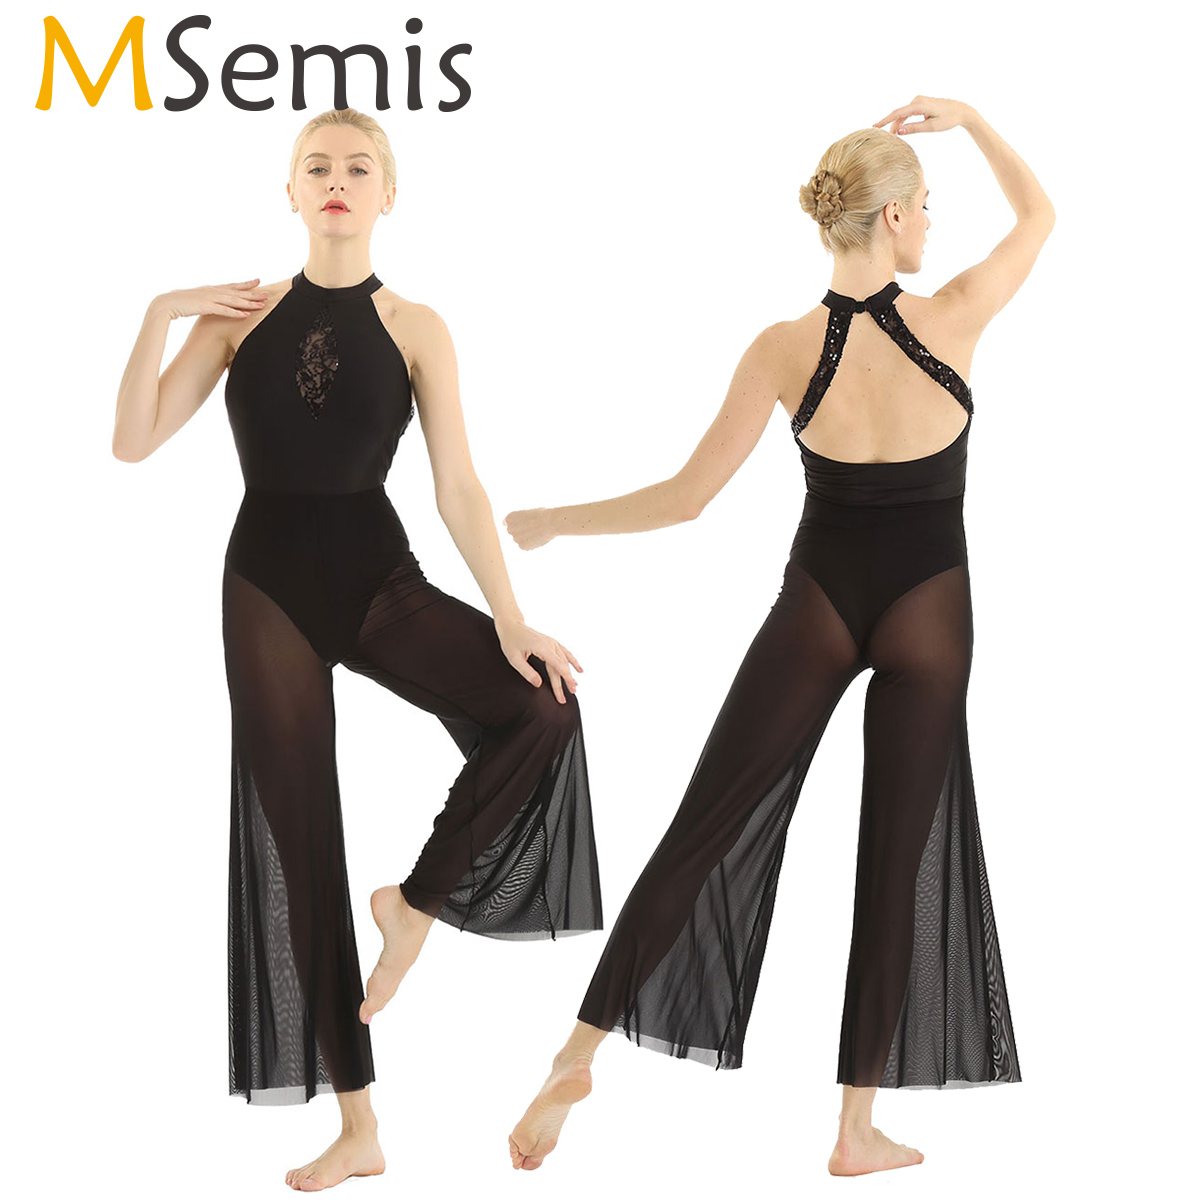 MSemis Women Contemporary Lyrical Dance Costumes Sequin Lace Insert Bodice Flare Culottes Ballerina Dance wear Ballet Bodysuit image